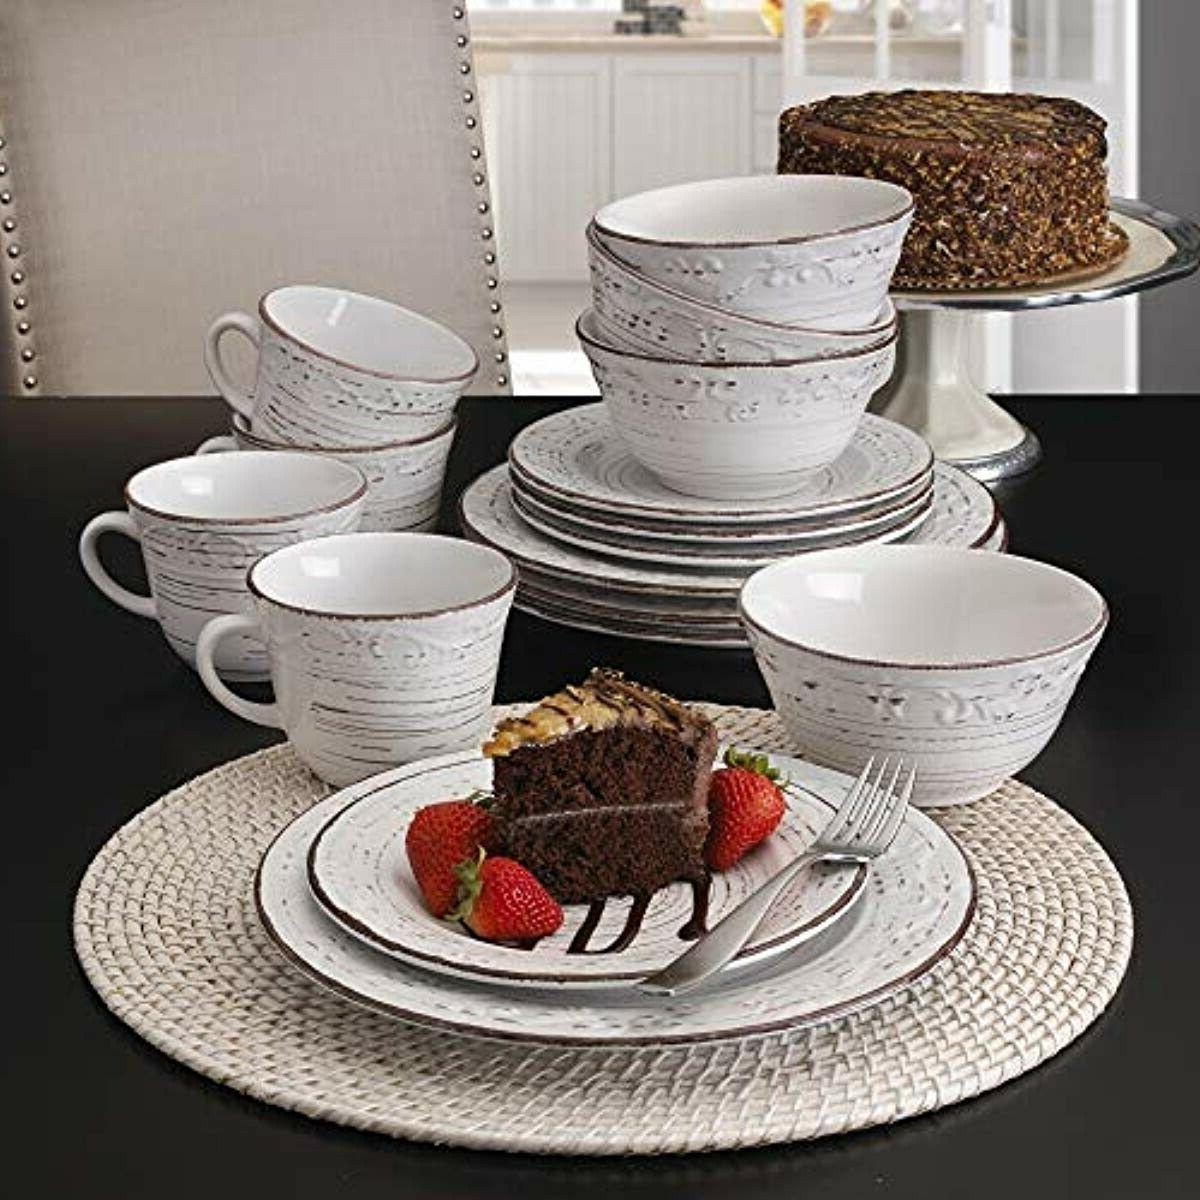 Pfaltzgraff 16-Piece Dinnerware Service for